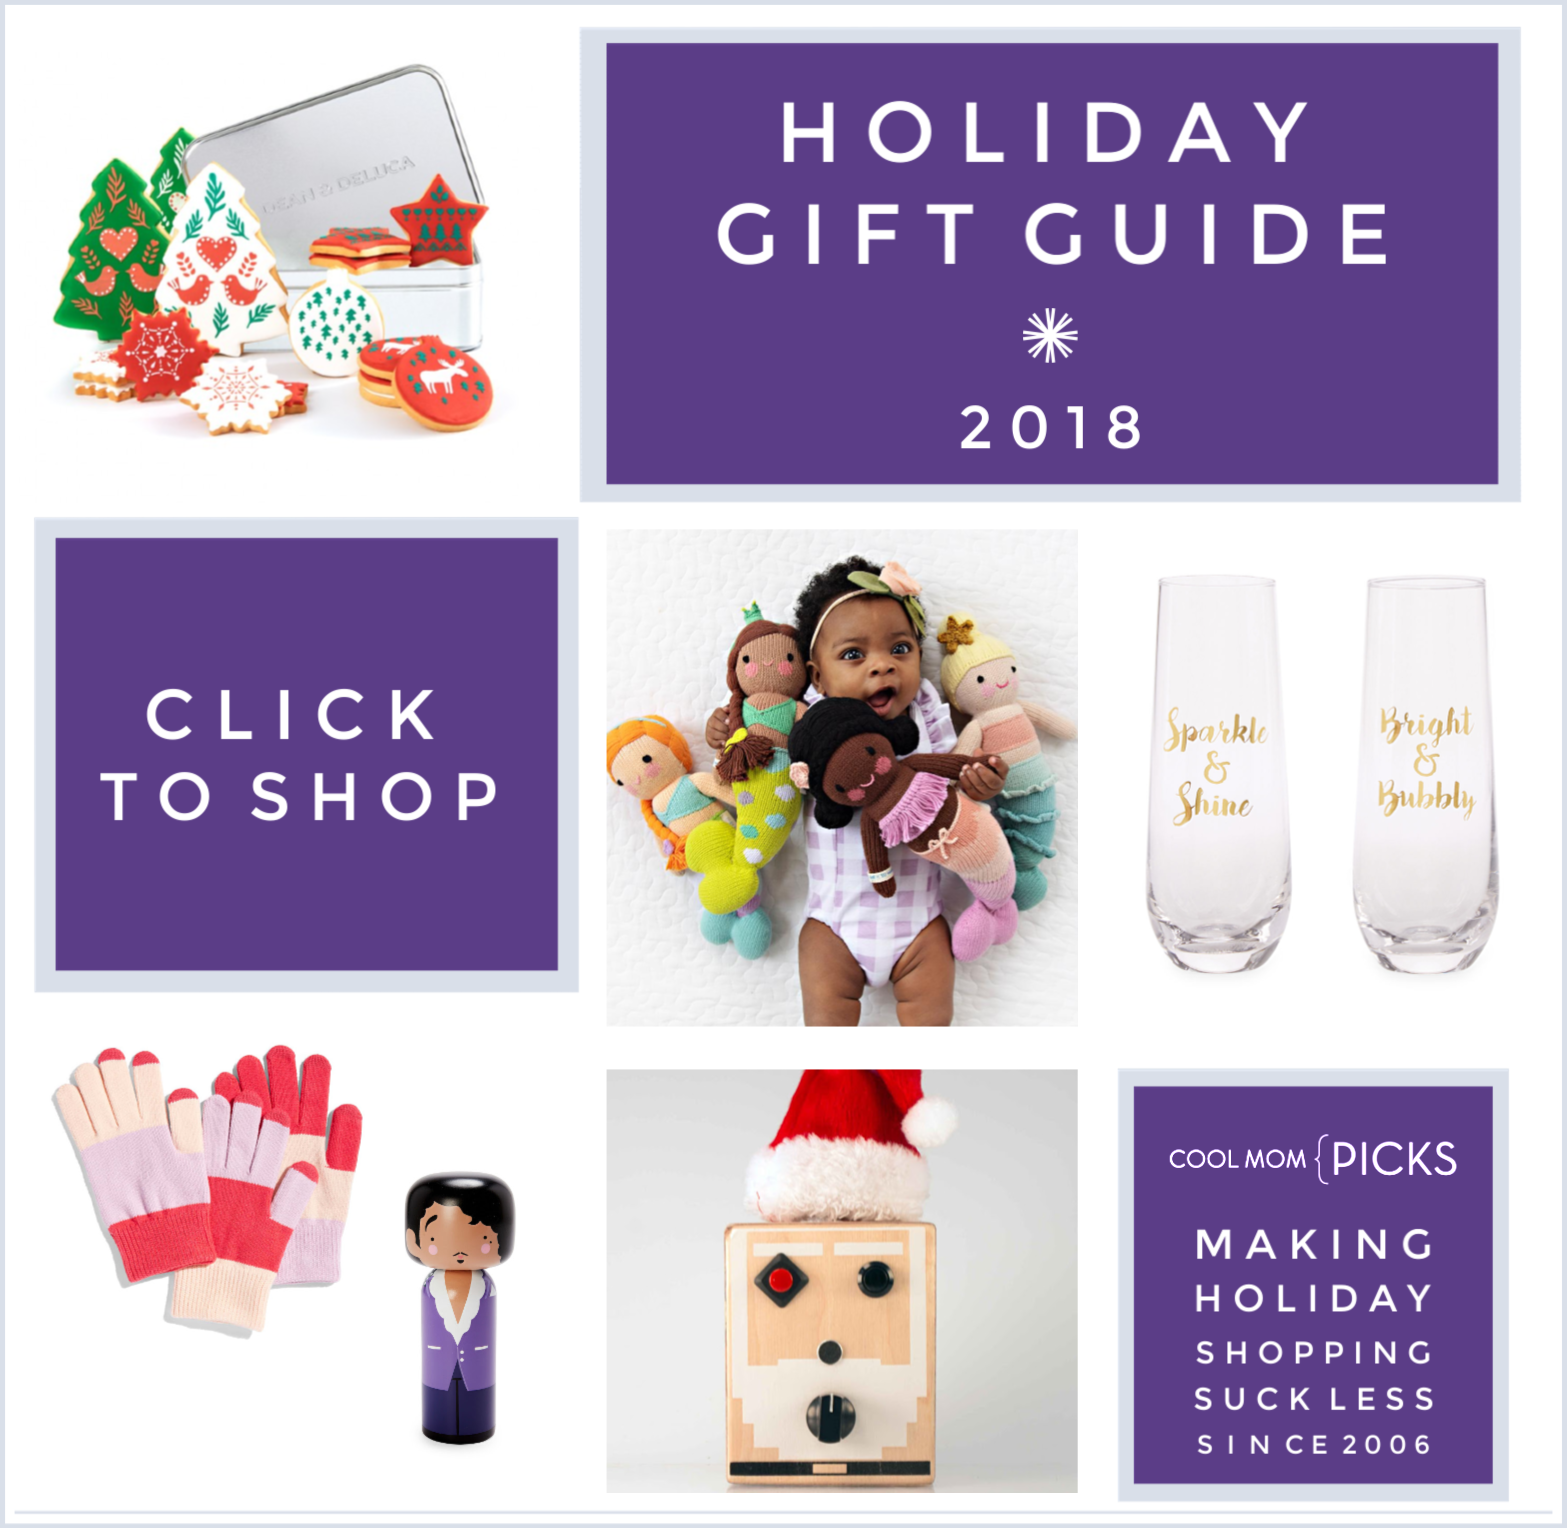 Find the coolest holiday gifts on Cool Mom Picks